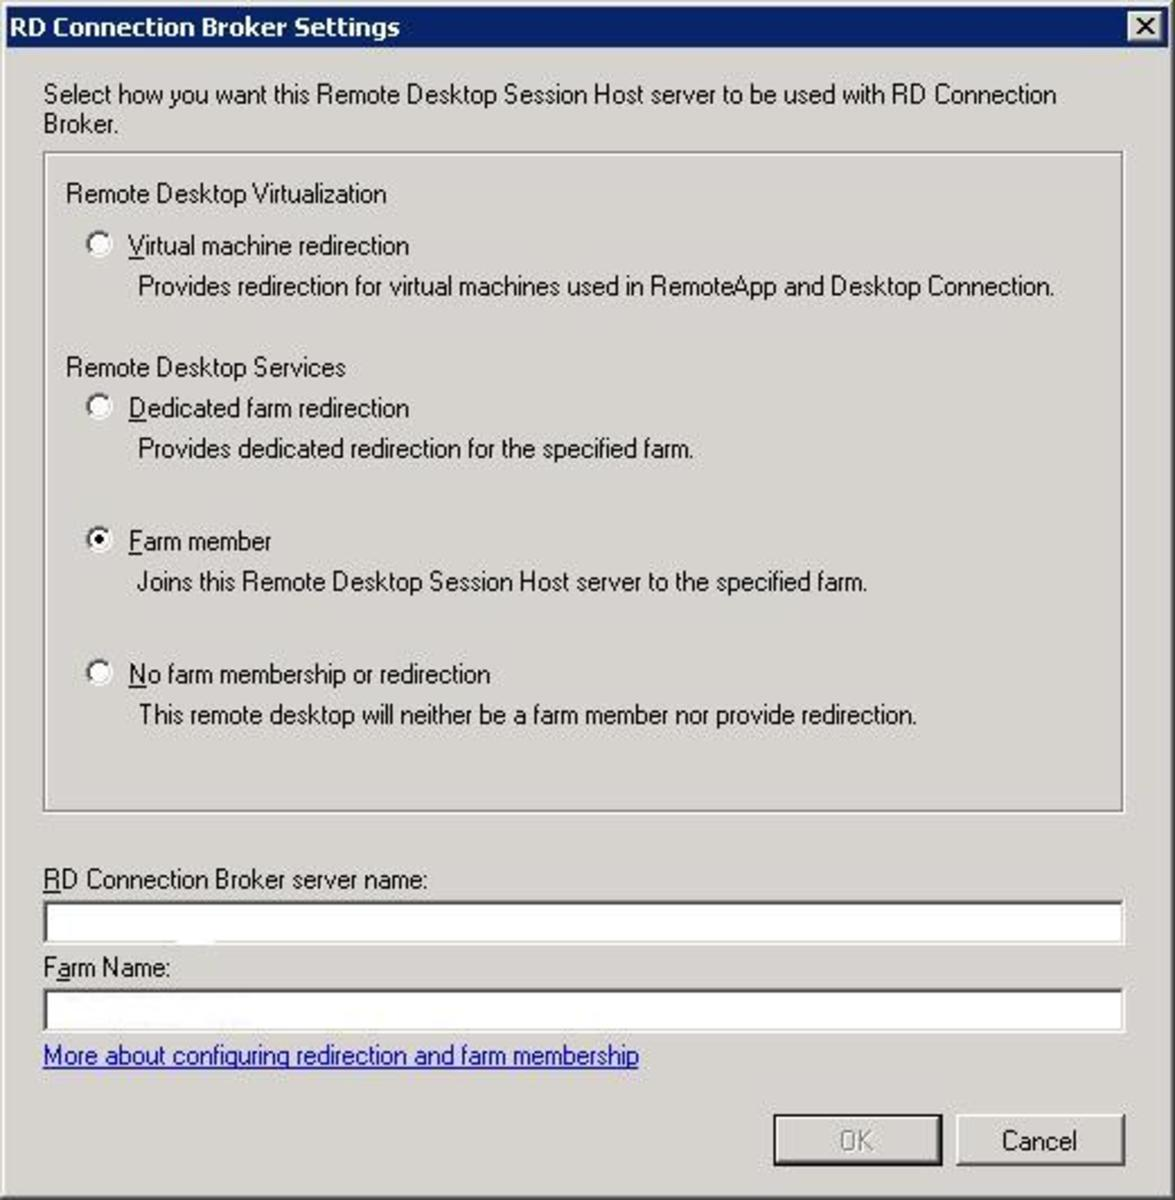 Remote Desktop Session Broker Load Balancing | TurboFuture